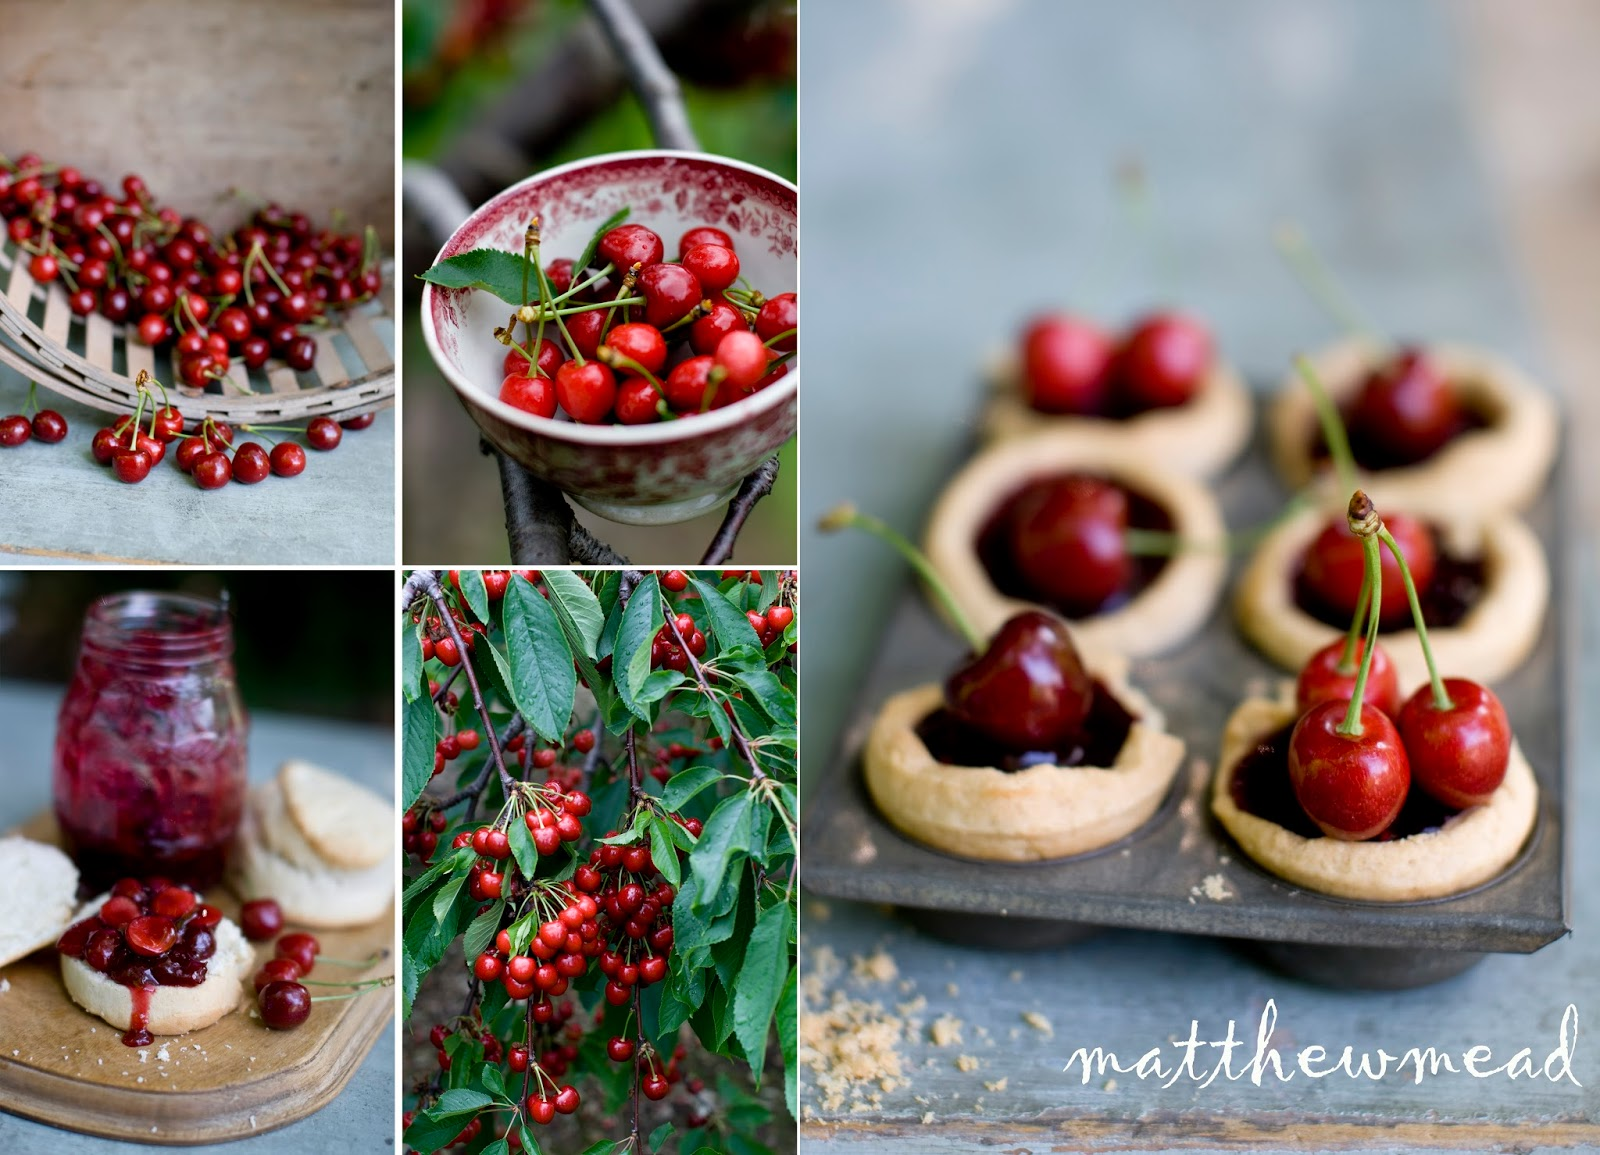 matthew-mead-food-photographer